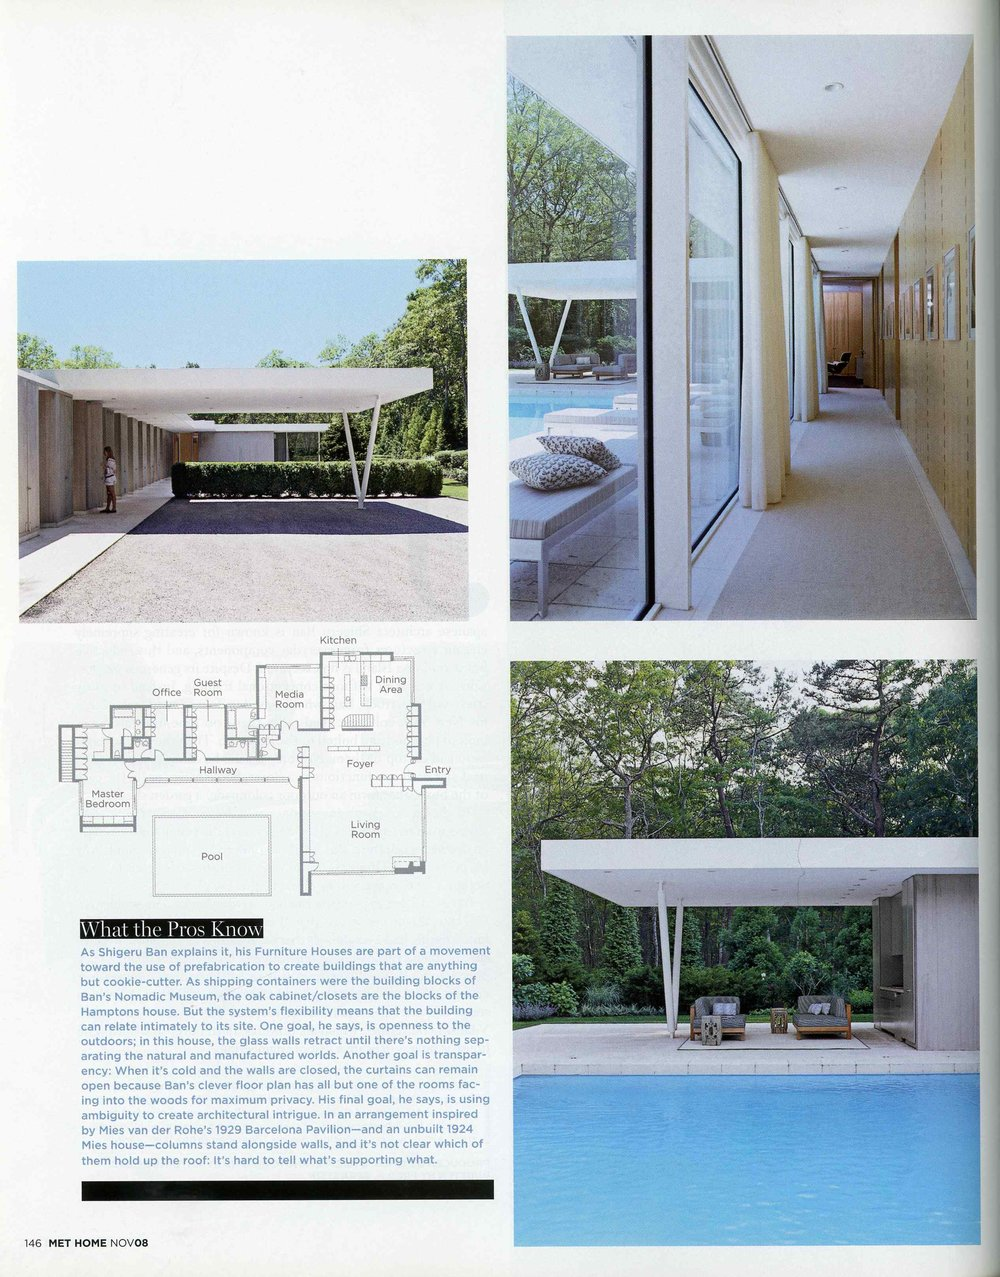 Met Home_Nov 08_Hamptons House_Full Article_Page_06.jpg